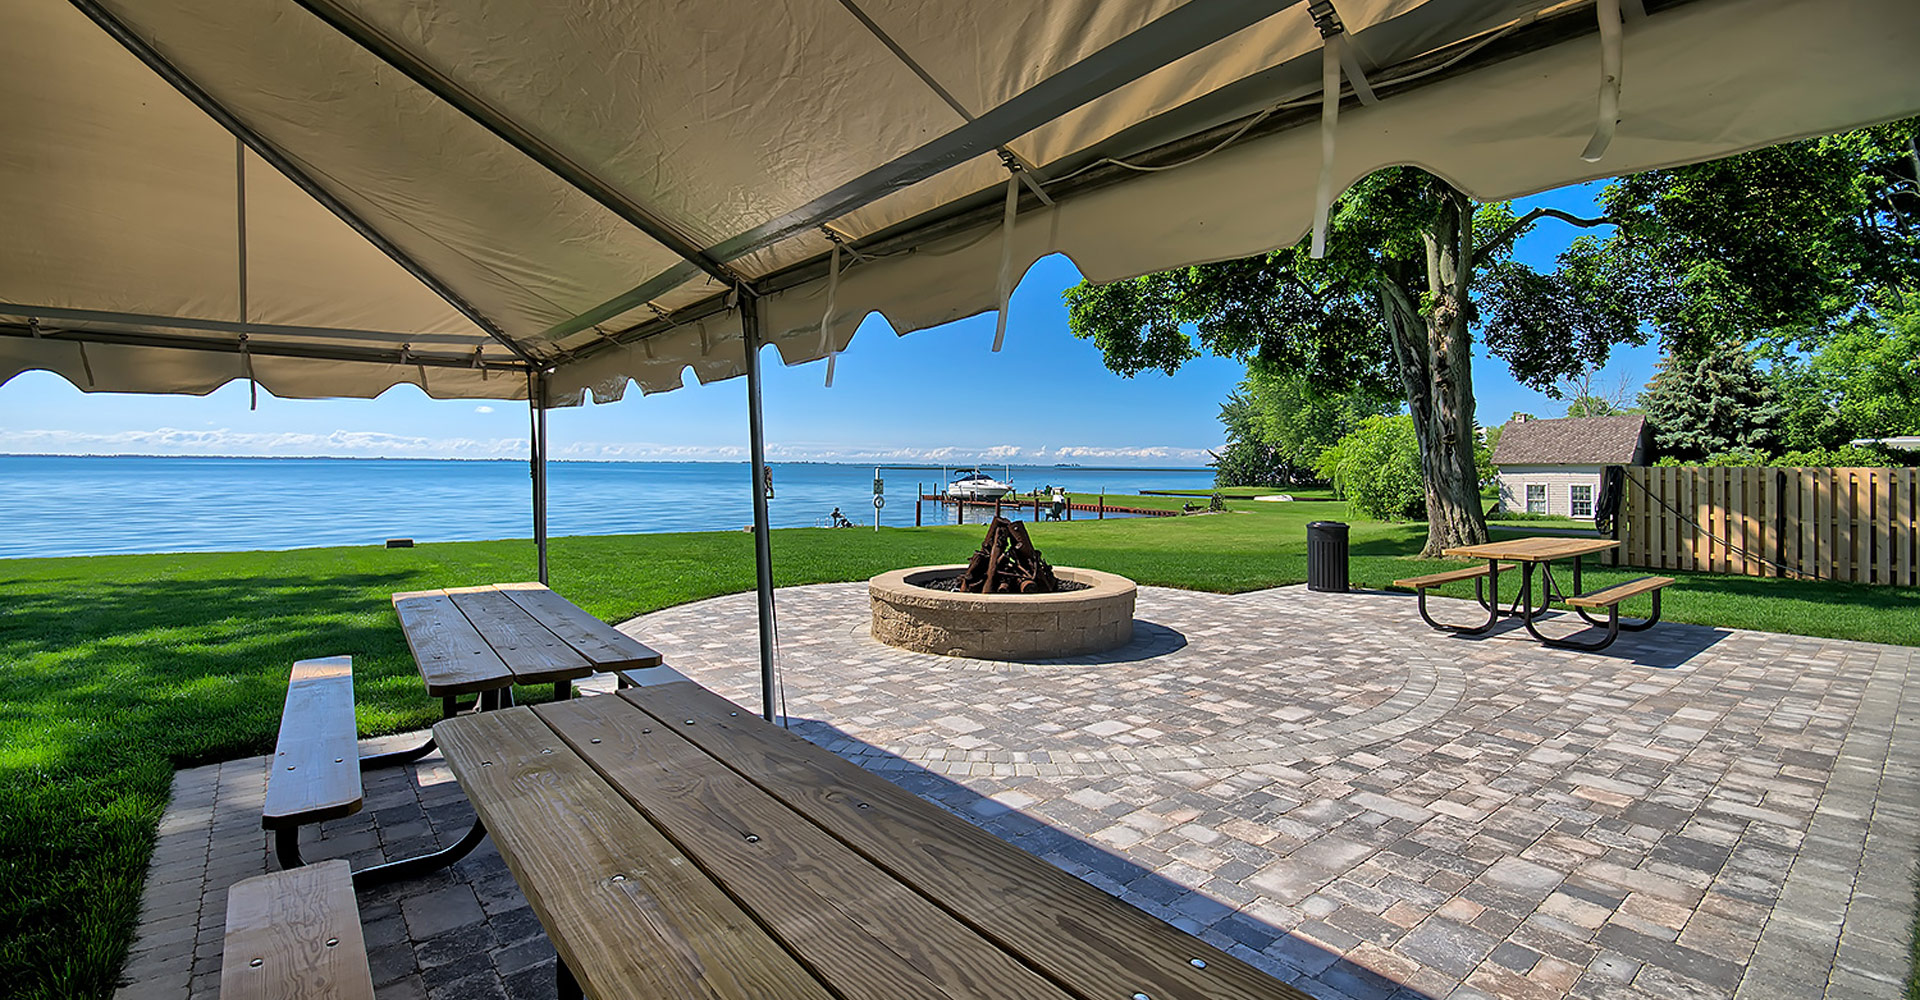 South Eastern Michigan S Premiere Kitchen: Northpointe Shores RV Resort Offers Beautiful Views Of